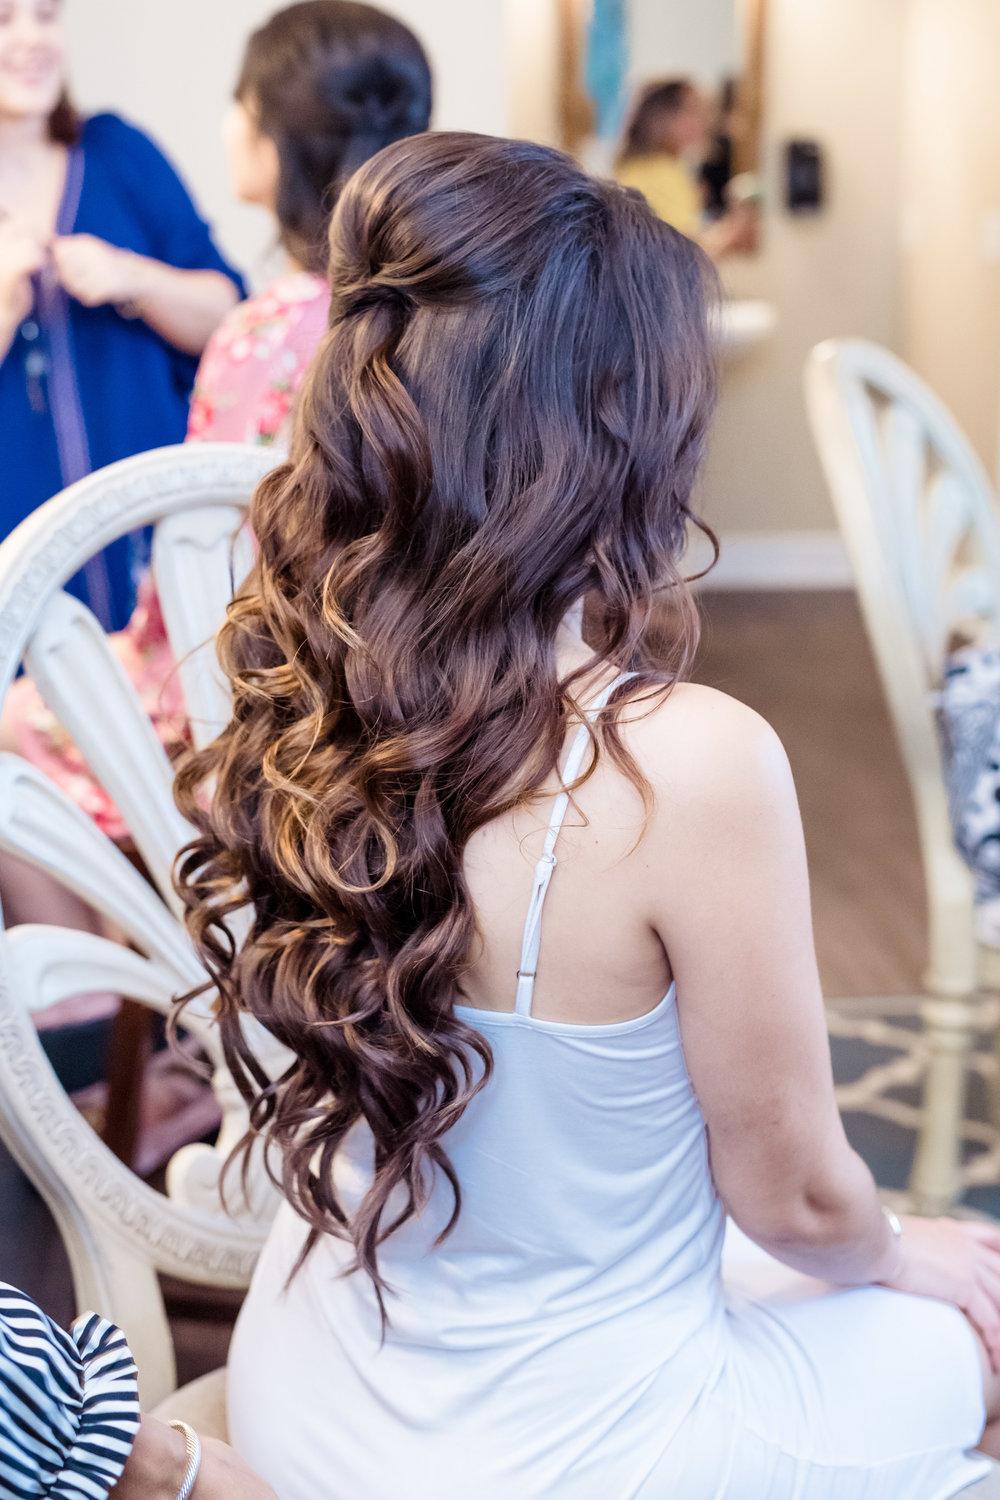 Bridal Hair - Done by Rosie